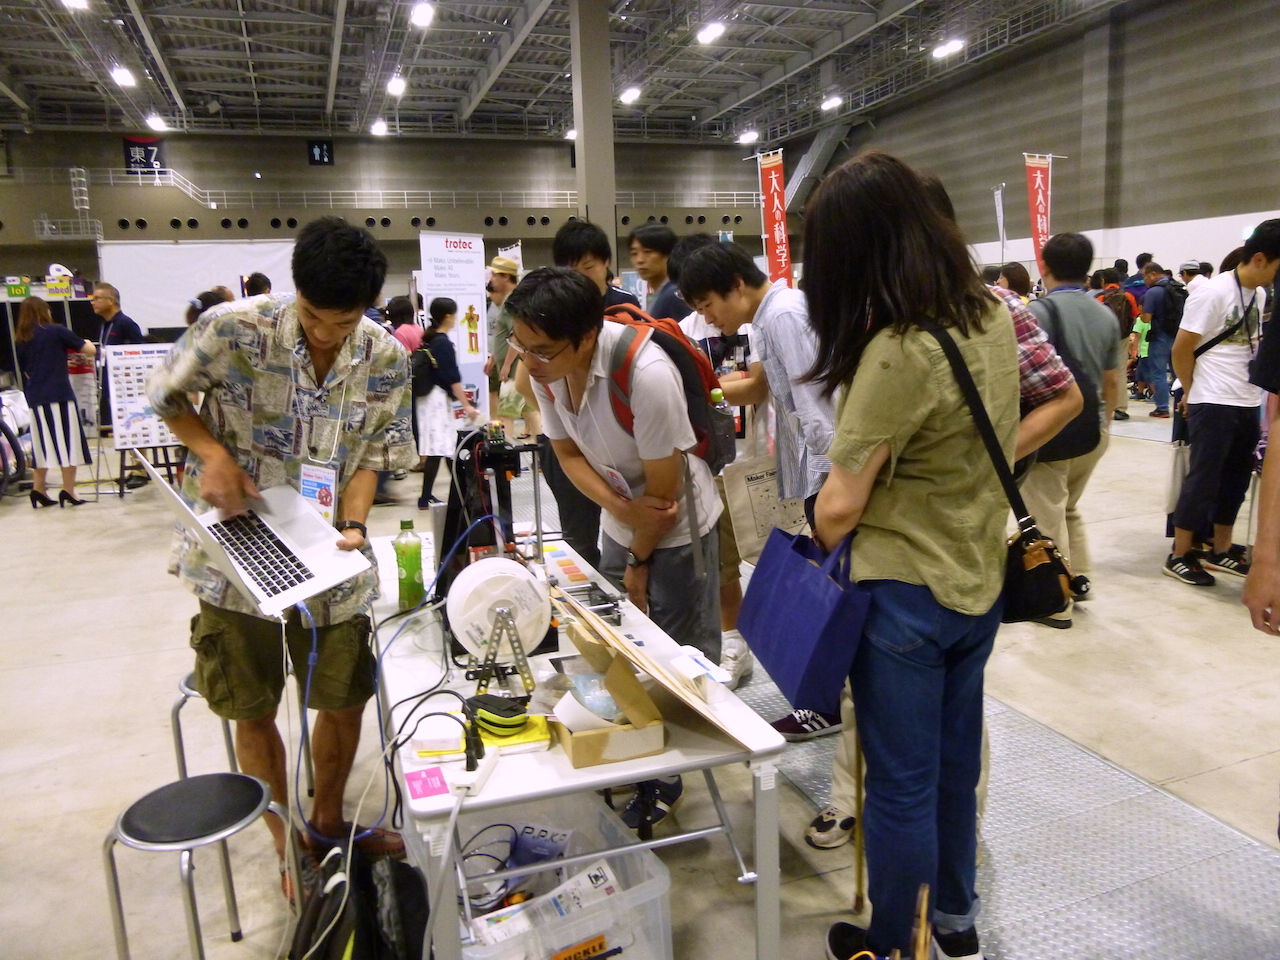 images/makerfaire.jpg